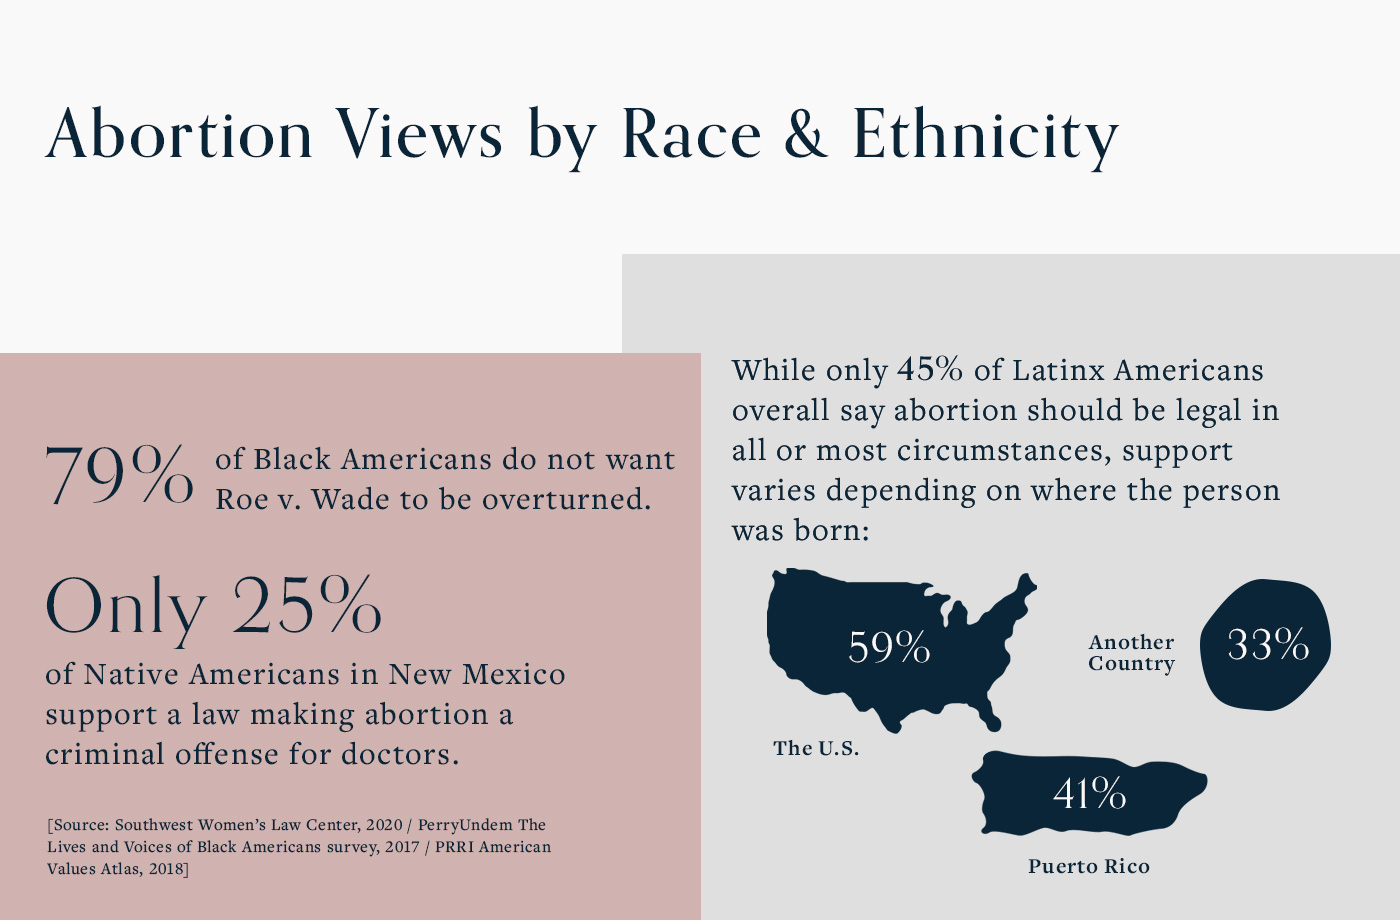 abortion data points for views on Black, Indigenous, and Latinx communities